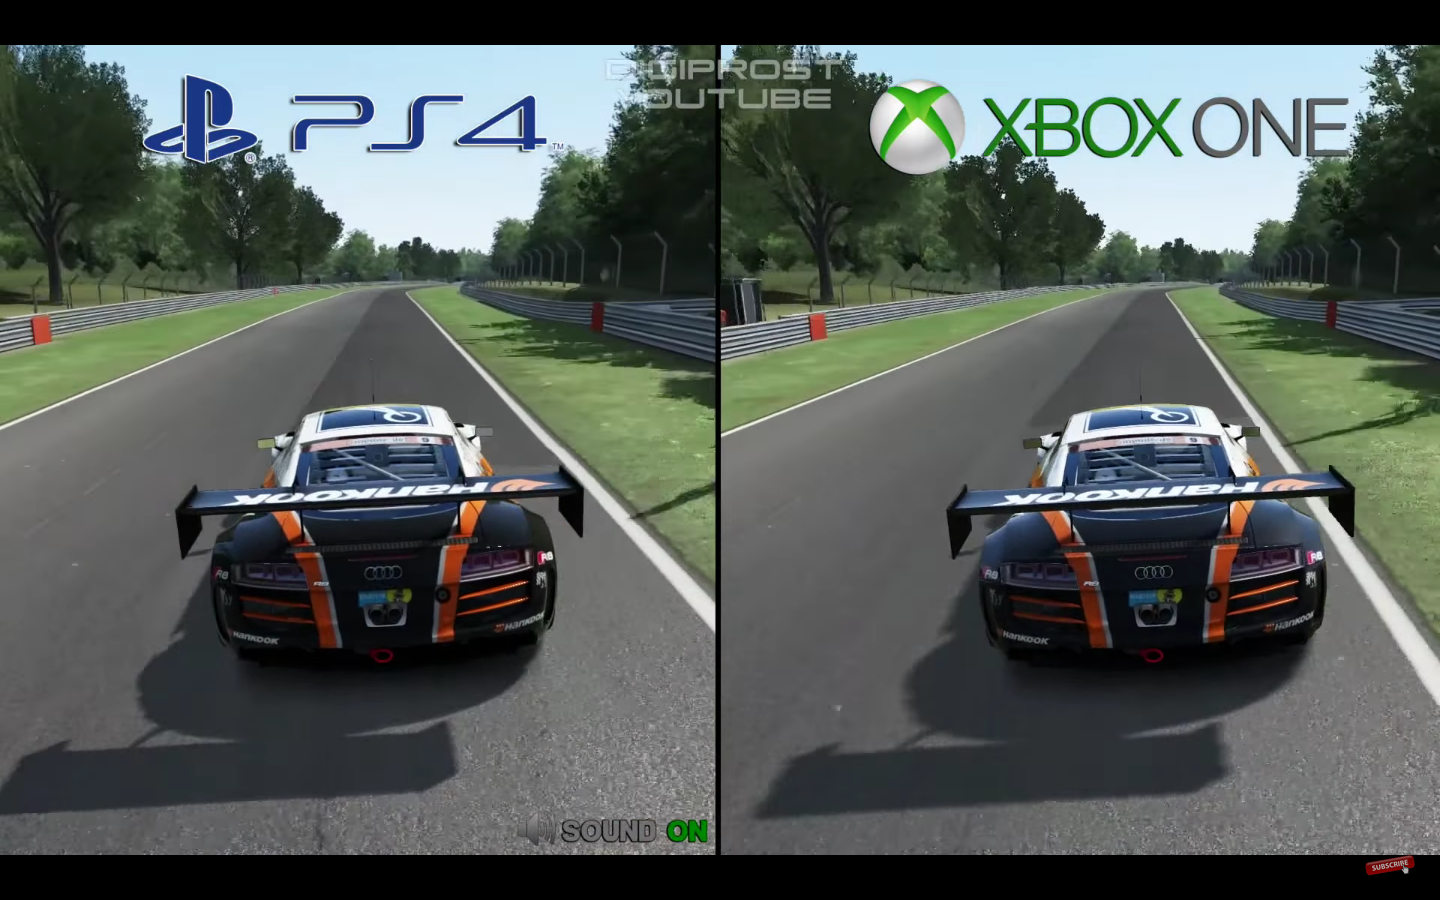 assetto corsa ps4 vs xbox one gameplay comparison. Black Bedroom Furniture Sets. Home Design Ideas